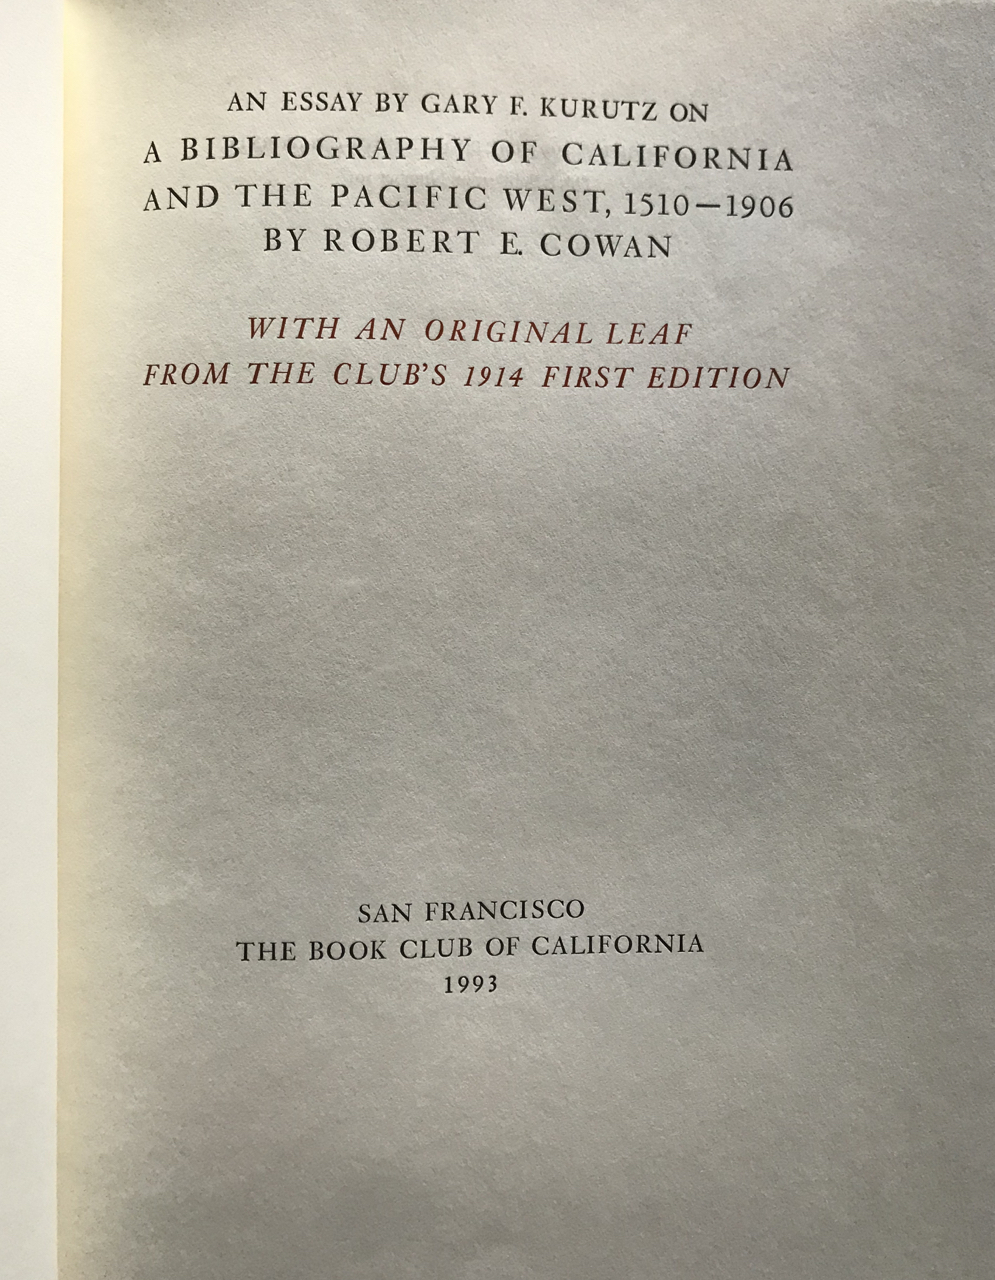 Image for AN ESSAY. ON A BIBLIOGRAPHY OF CALIFORNIA AND THE PACIFIC WEST, 1510- 1906 BY ROBERT E. COWAN. With an Original Leaf from the Club's 1914 First Edition.